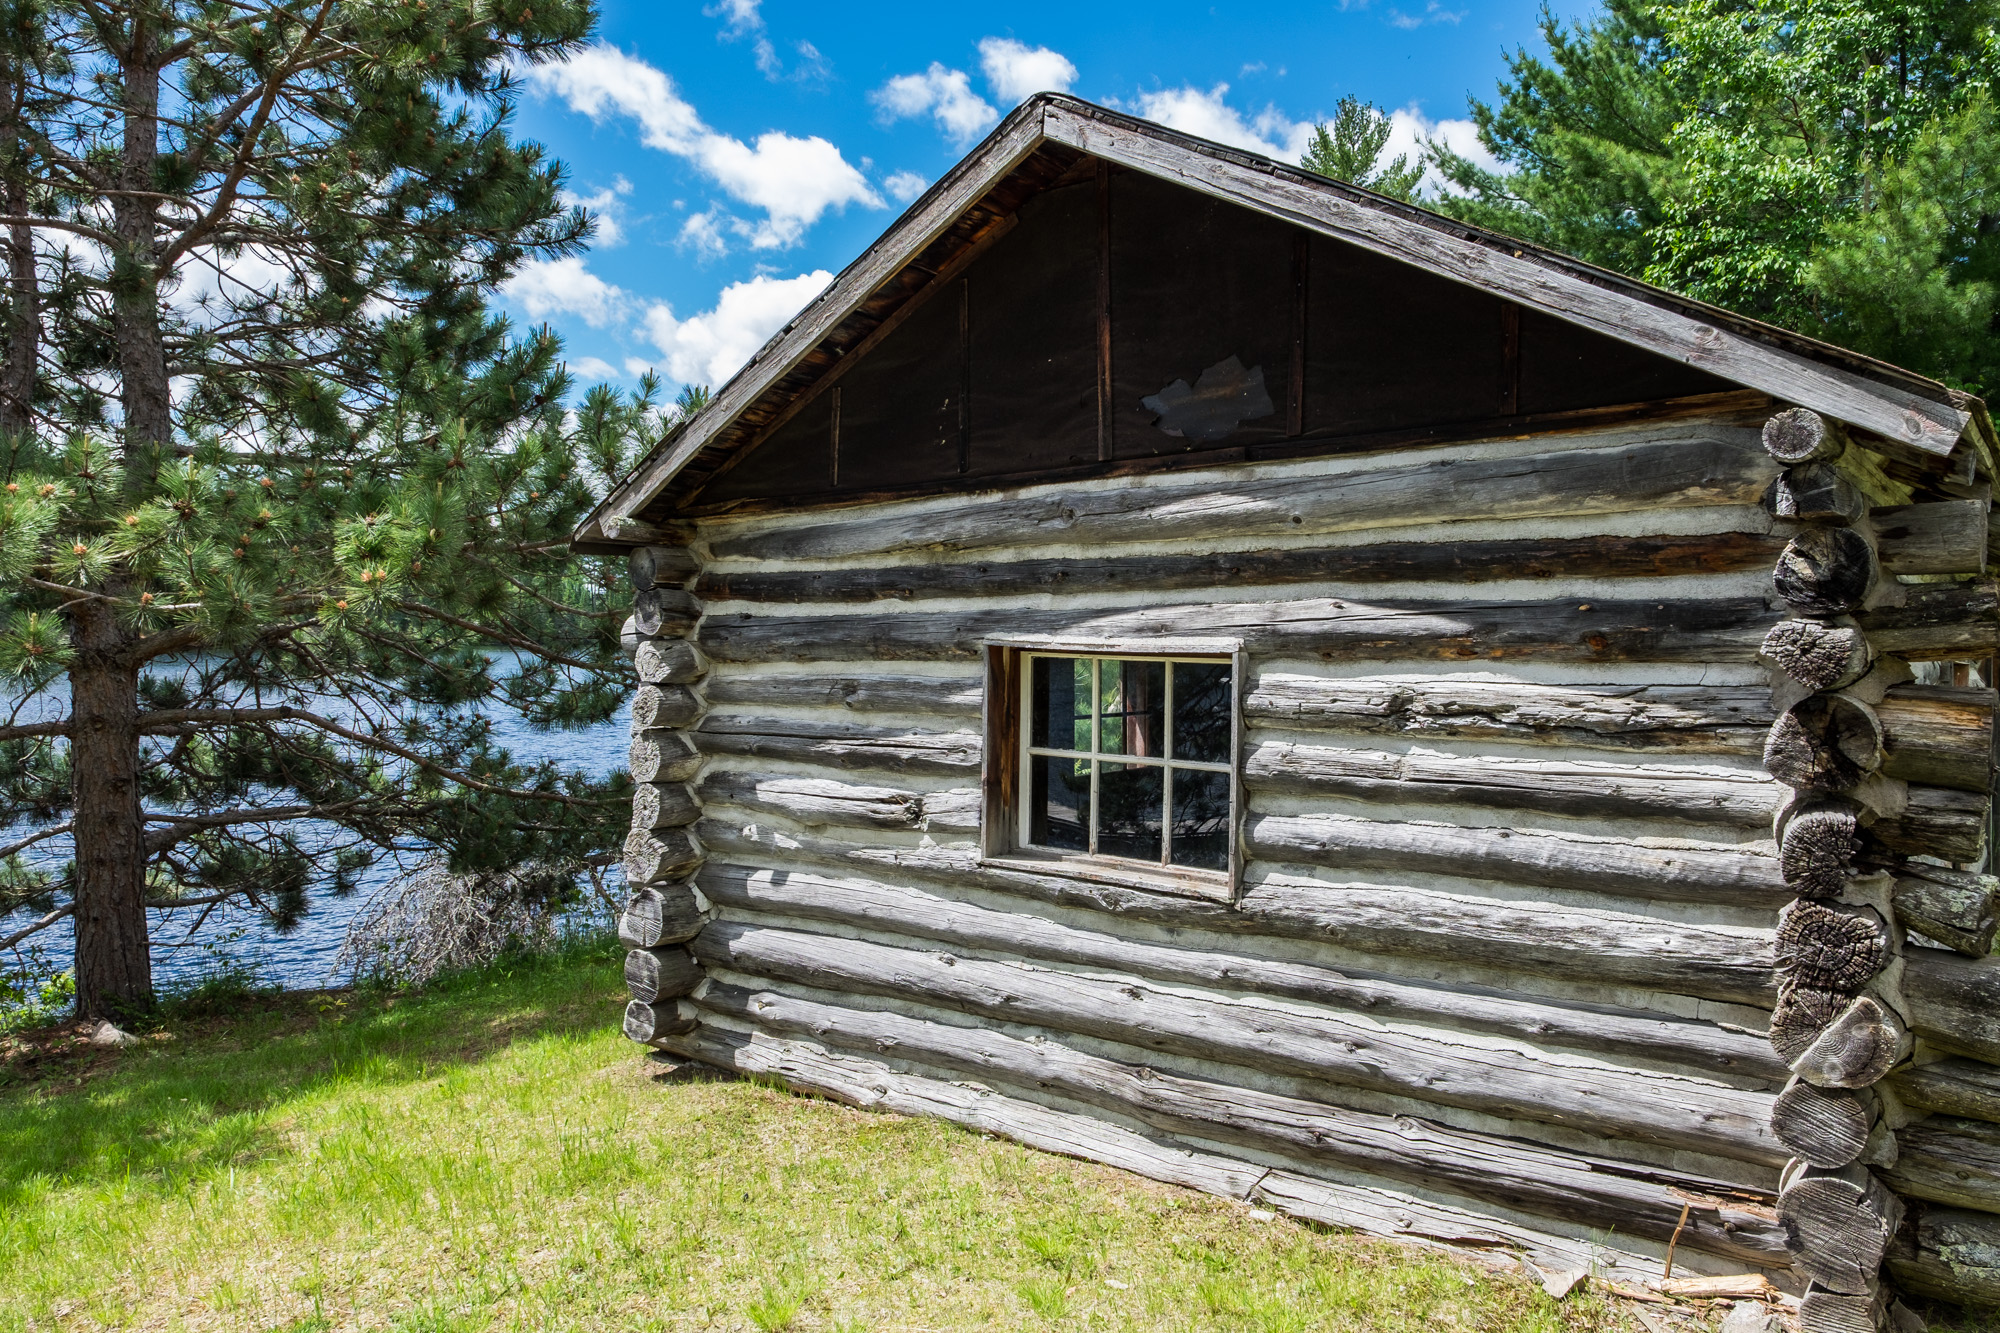 Early fur traders settled the islands and built log homes such as this one.